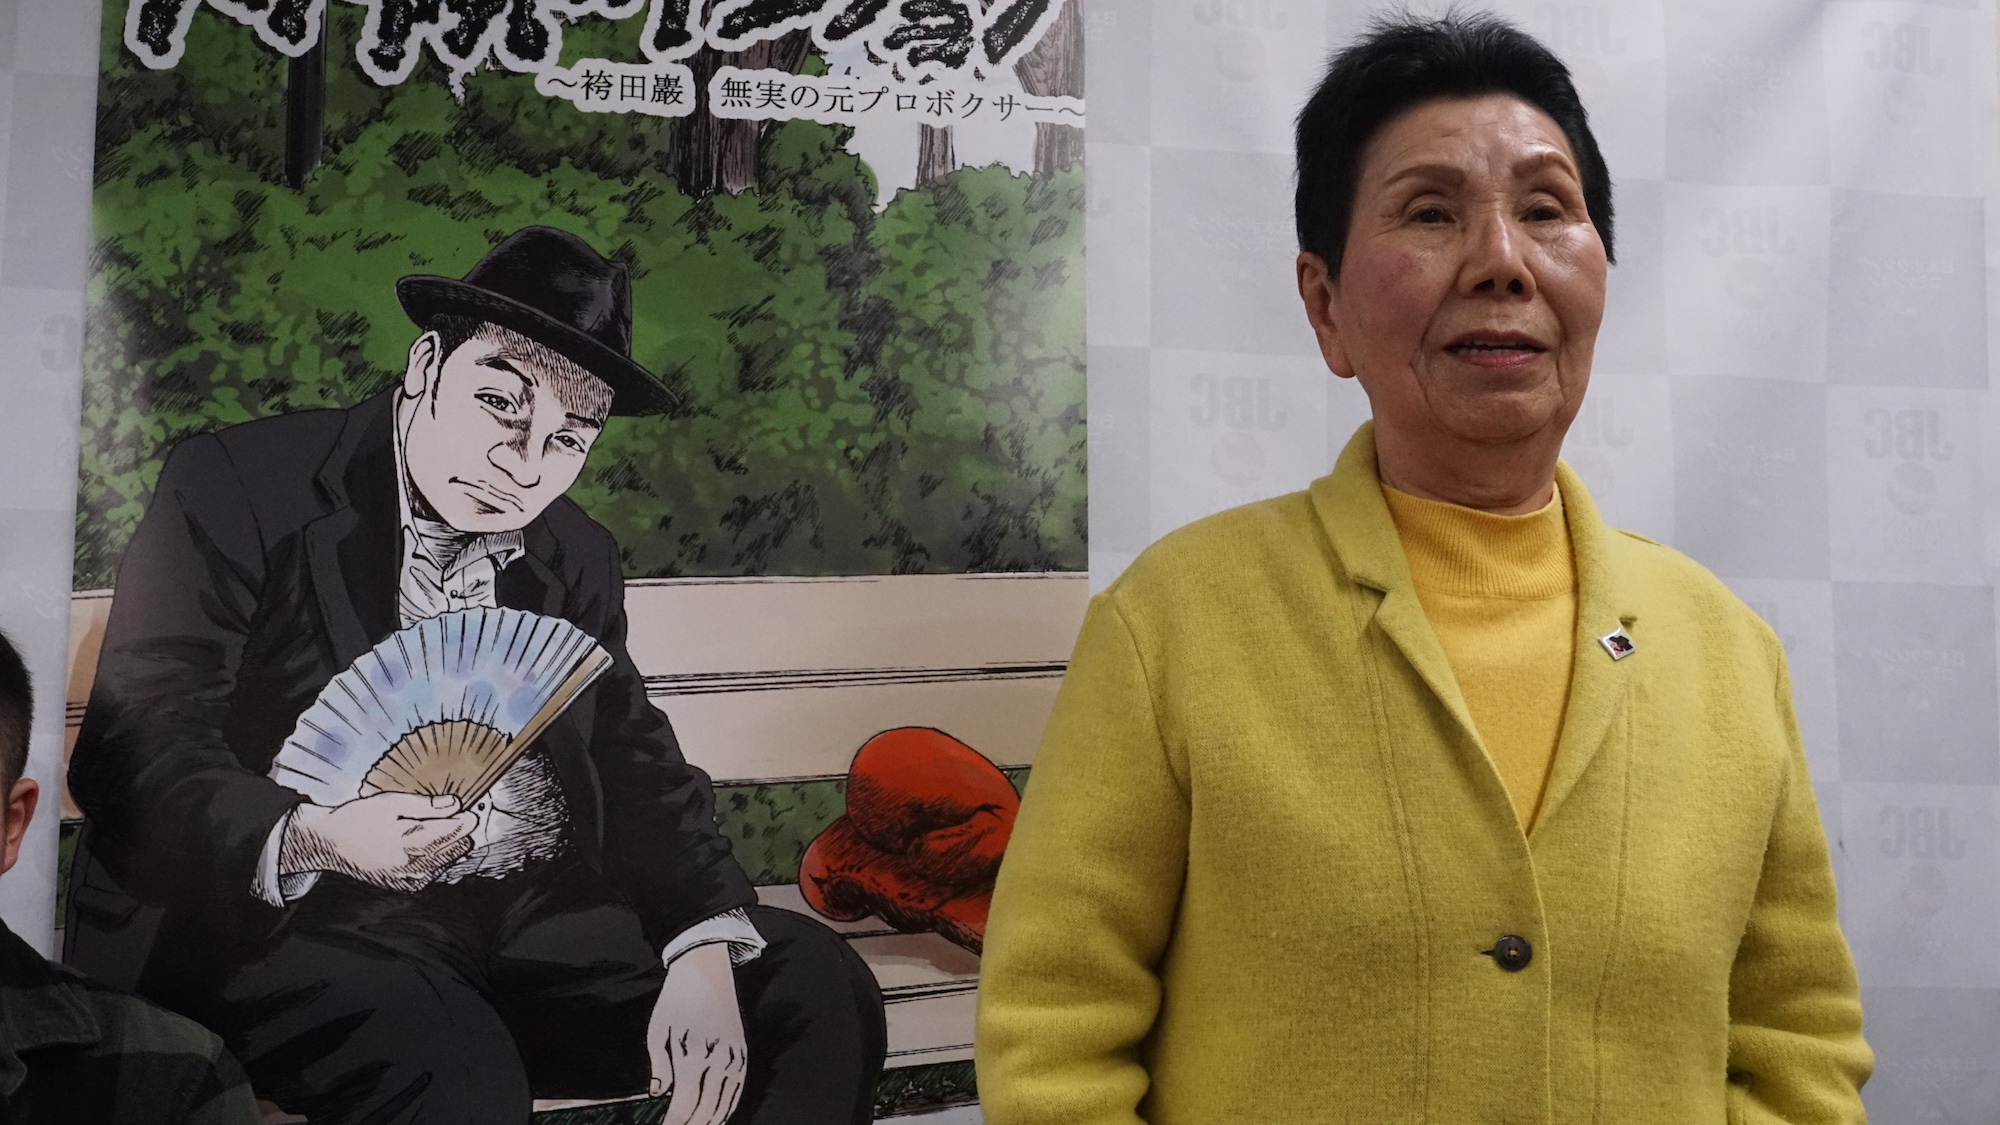 Hideko Hakamada, elder sister of freed death-row inmate Iwao Hakamada, speaks at a news conference Wednesday in Tokyo in front of a poster for the new manga series that depicts the ex-boxer's life. | MAGDALENA OSUMI